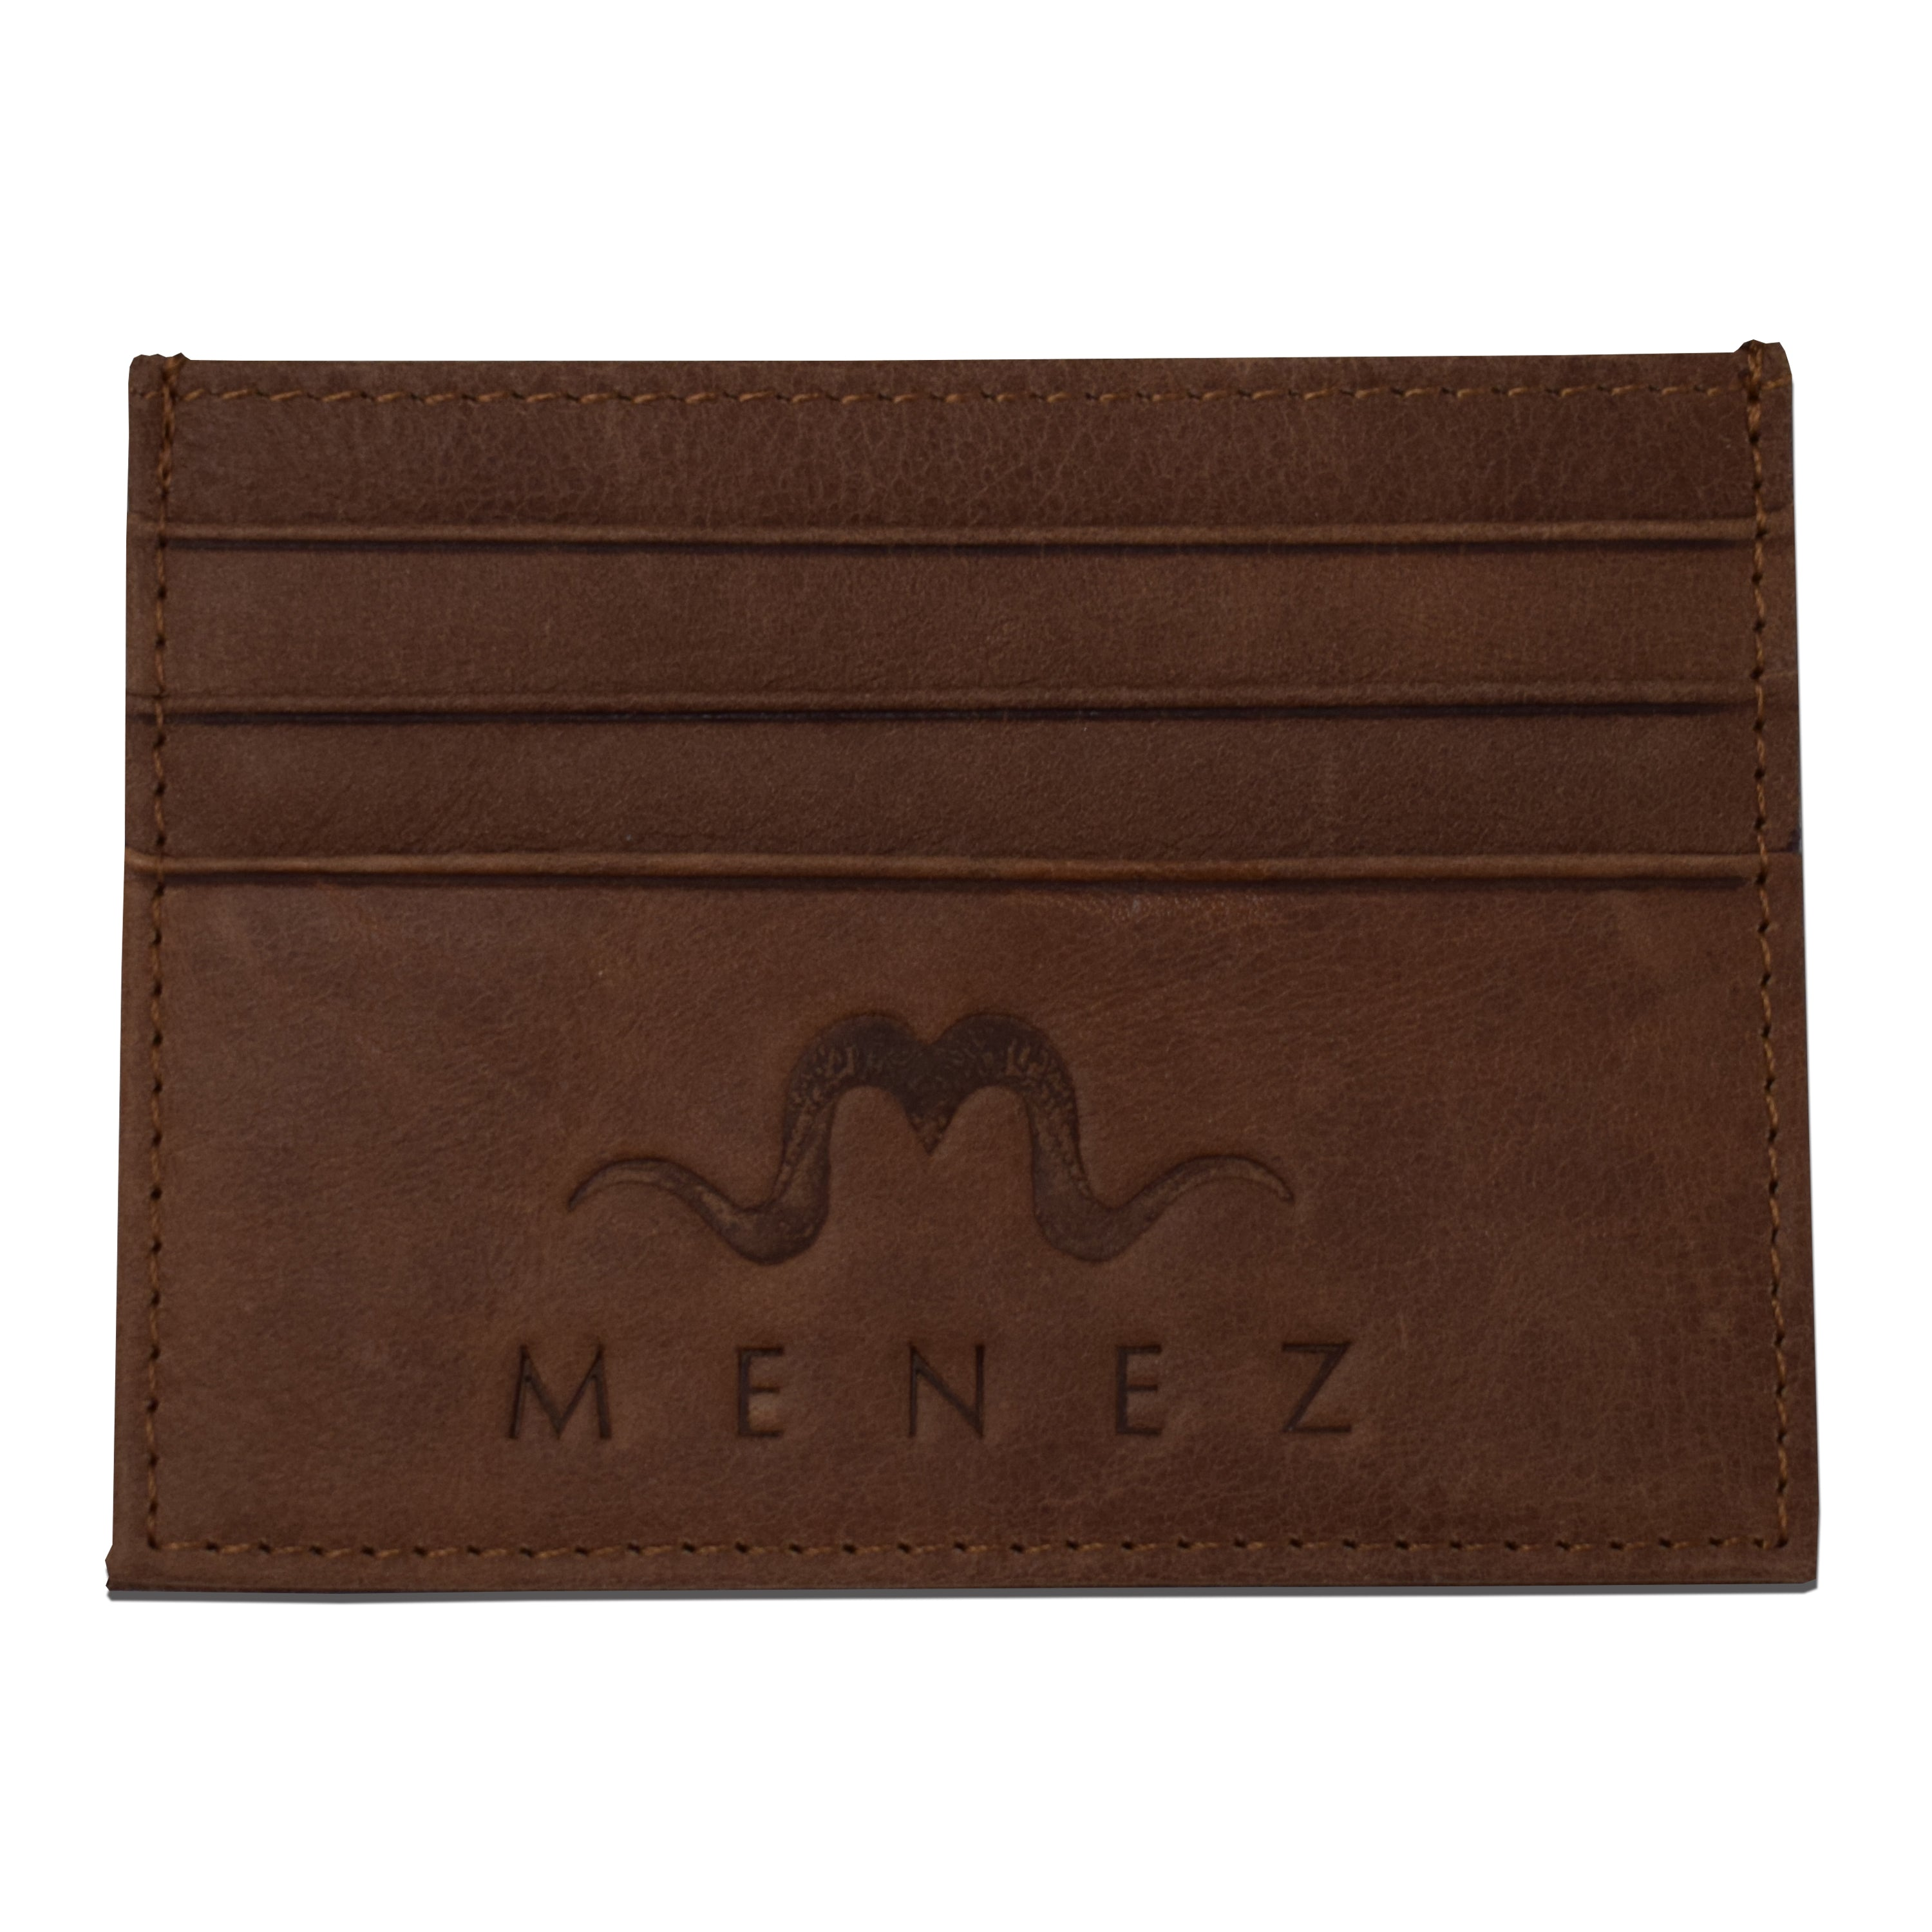 MENEZ™ BROWN LEATHER CARD HOLDER - MENEZ